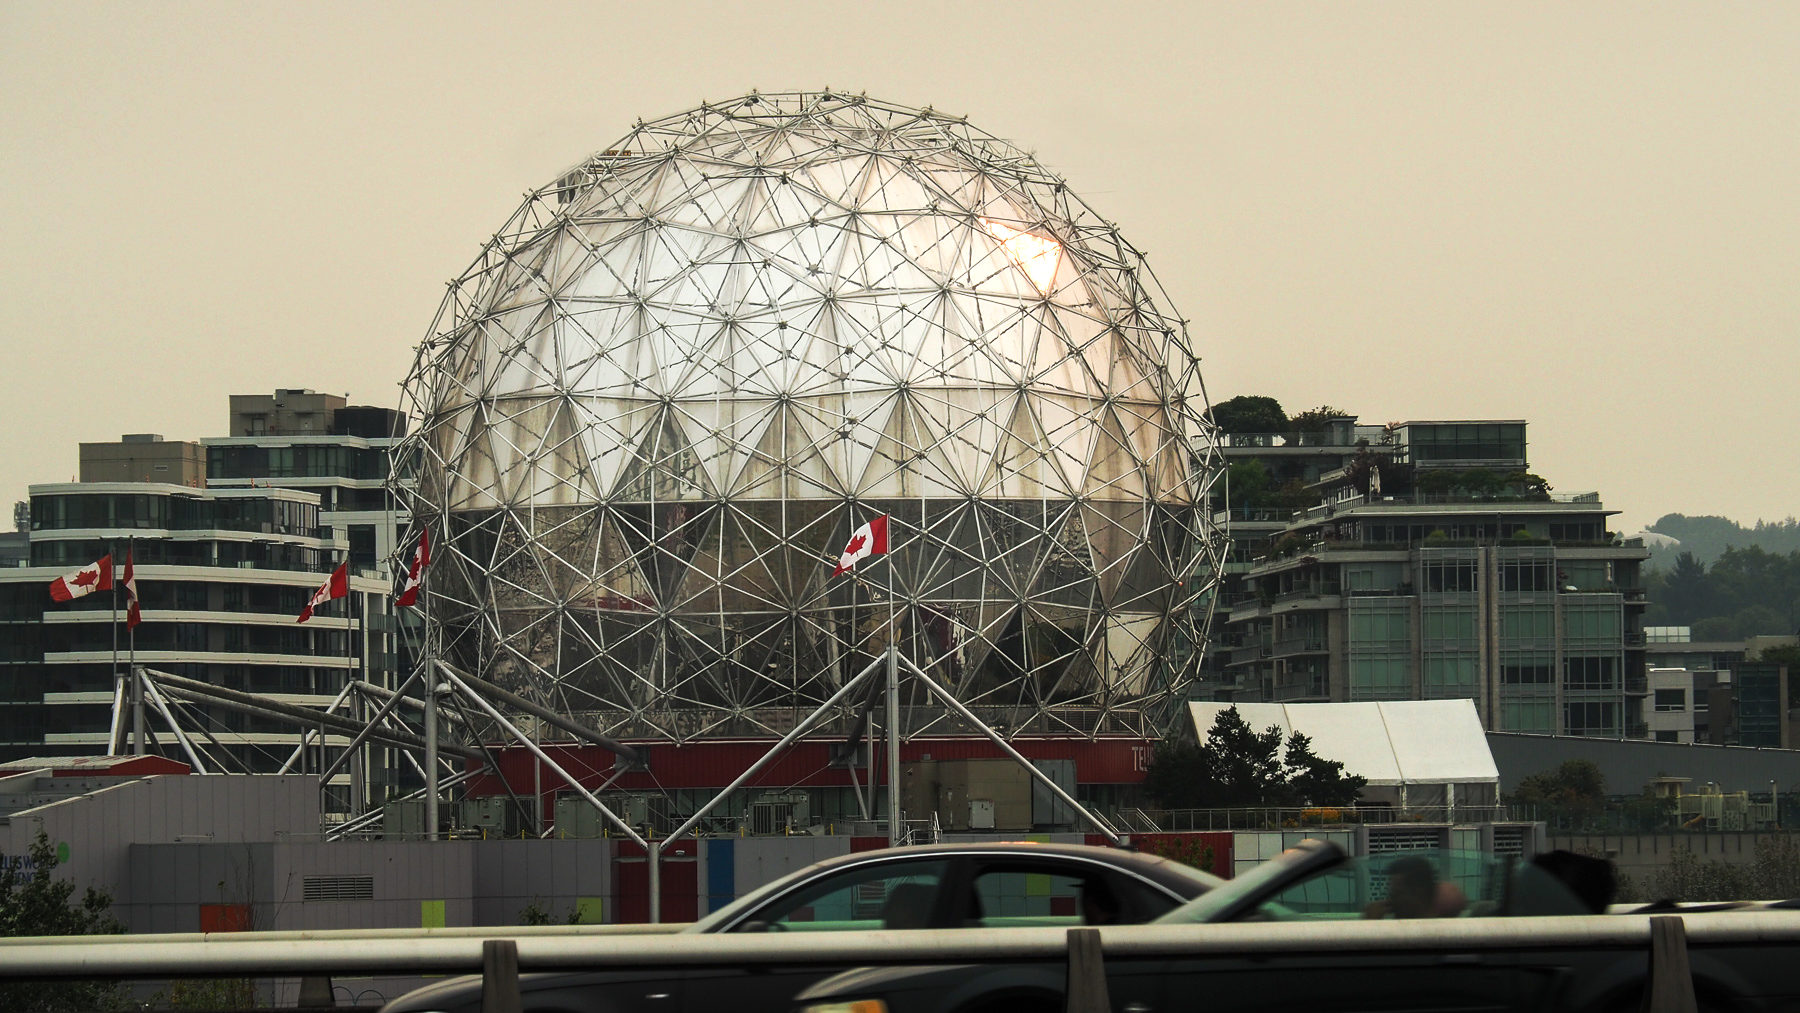 Science World Kuppel